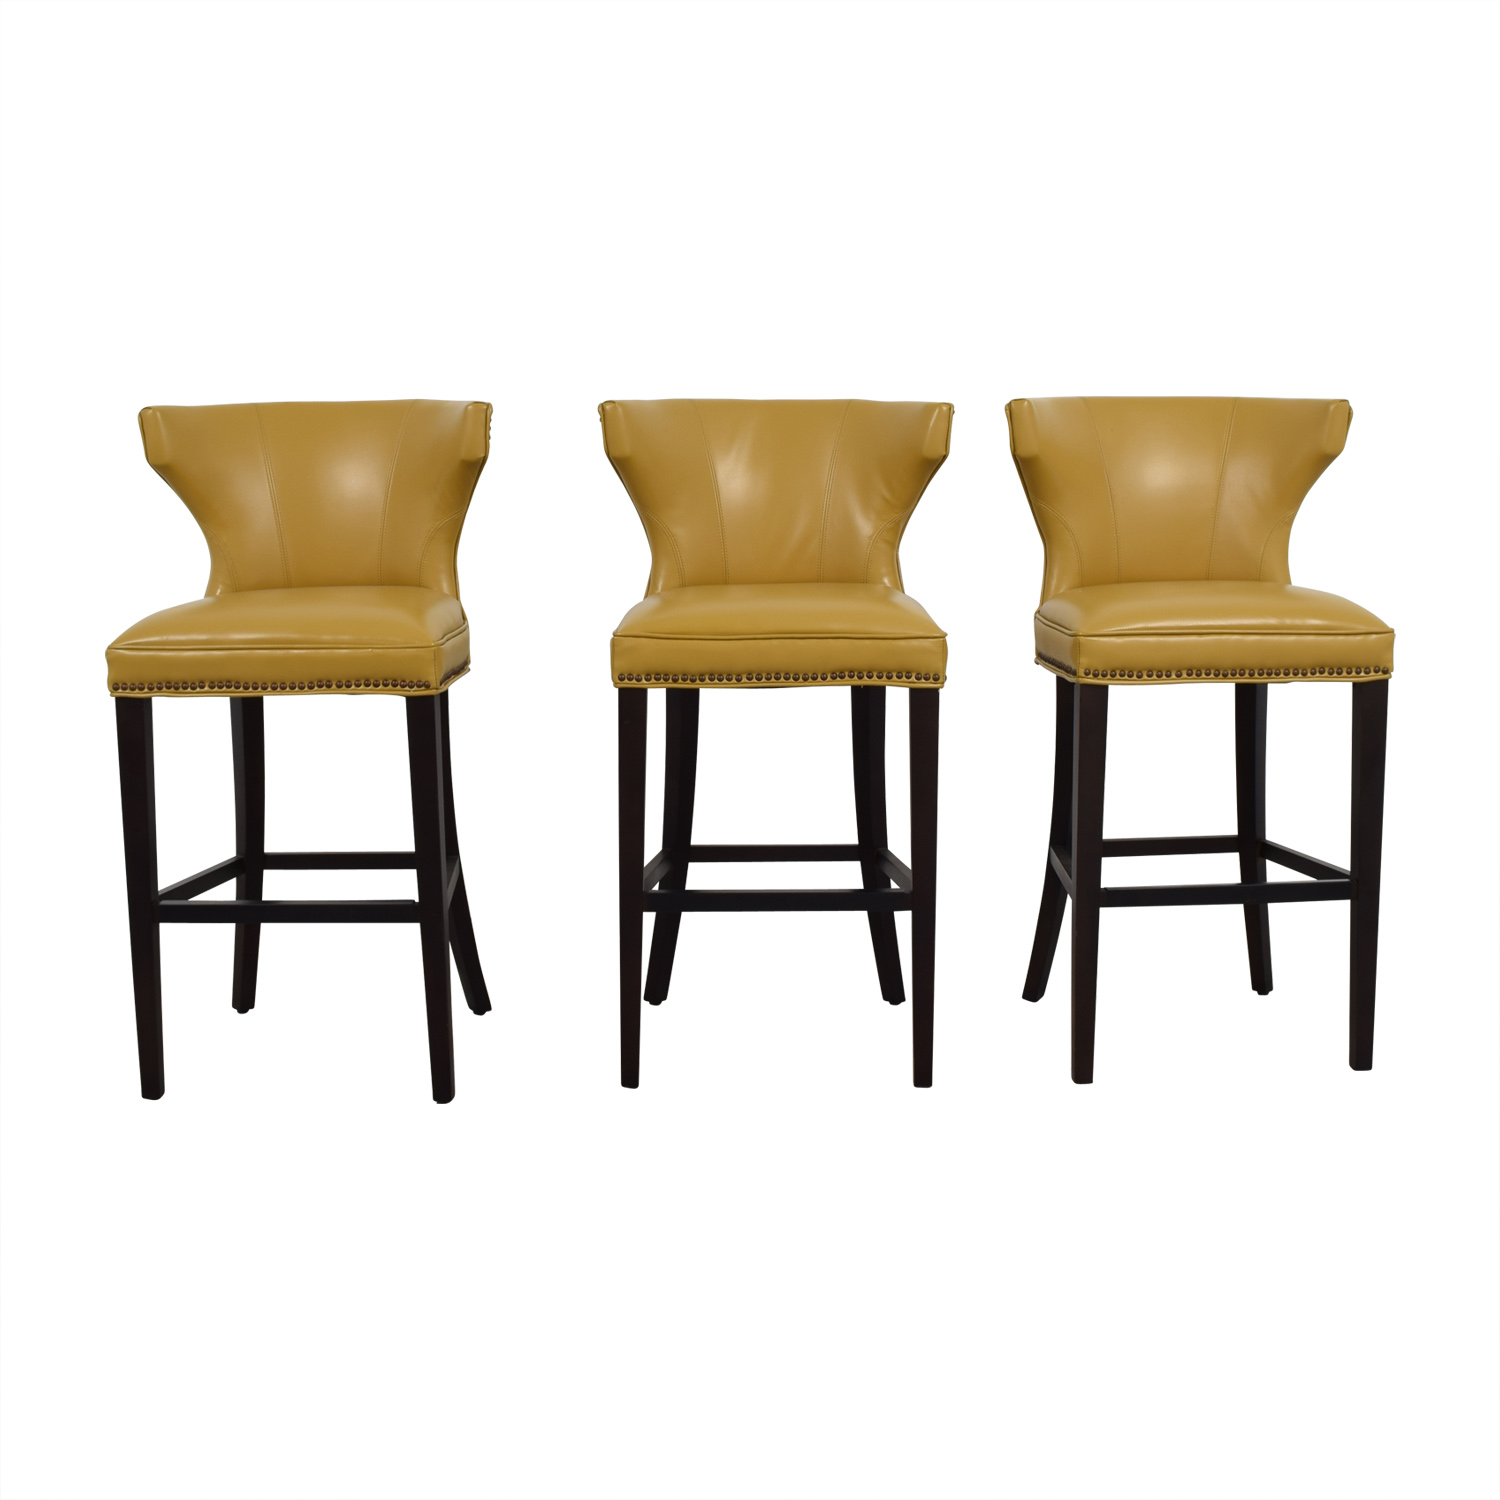 Wonderful 72% OFF - Grandin Road Grandin Road Mustard Yellow Bar Stools / Chairs CY48